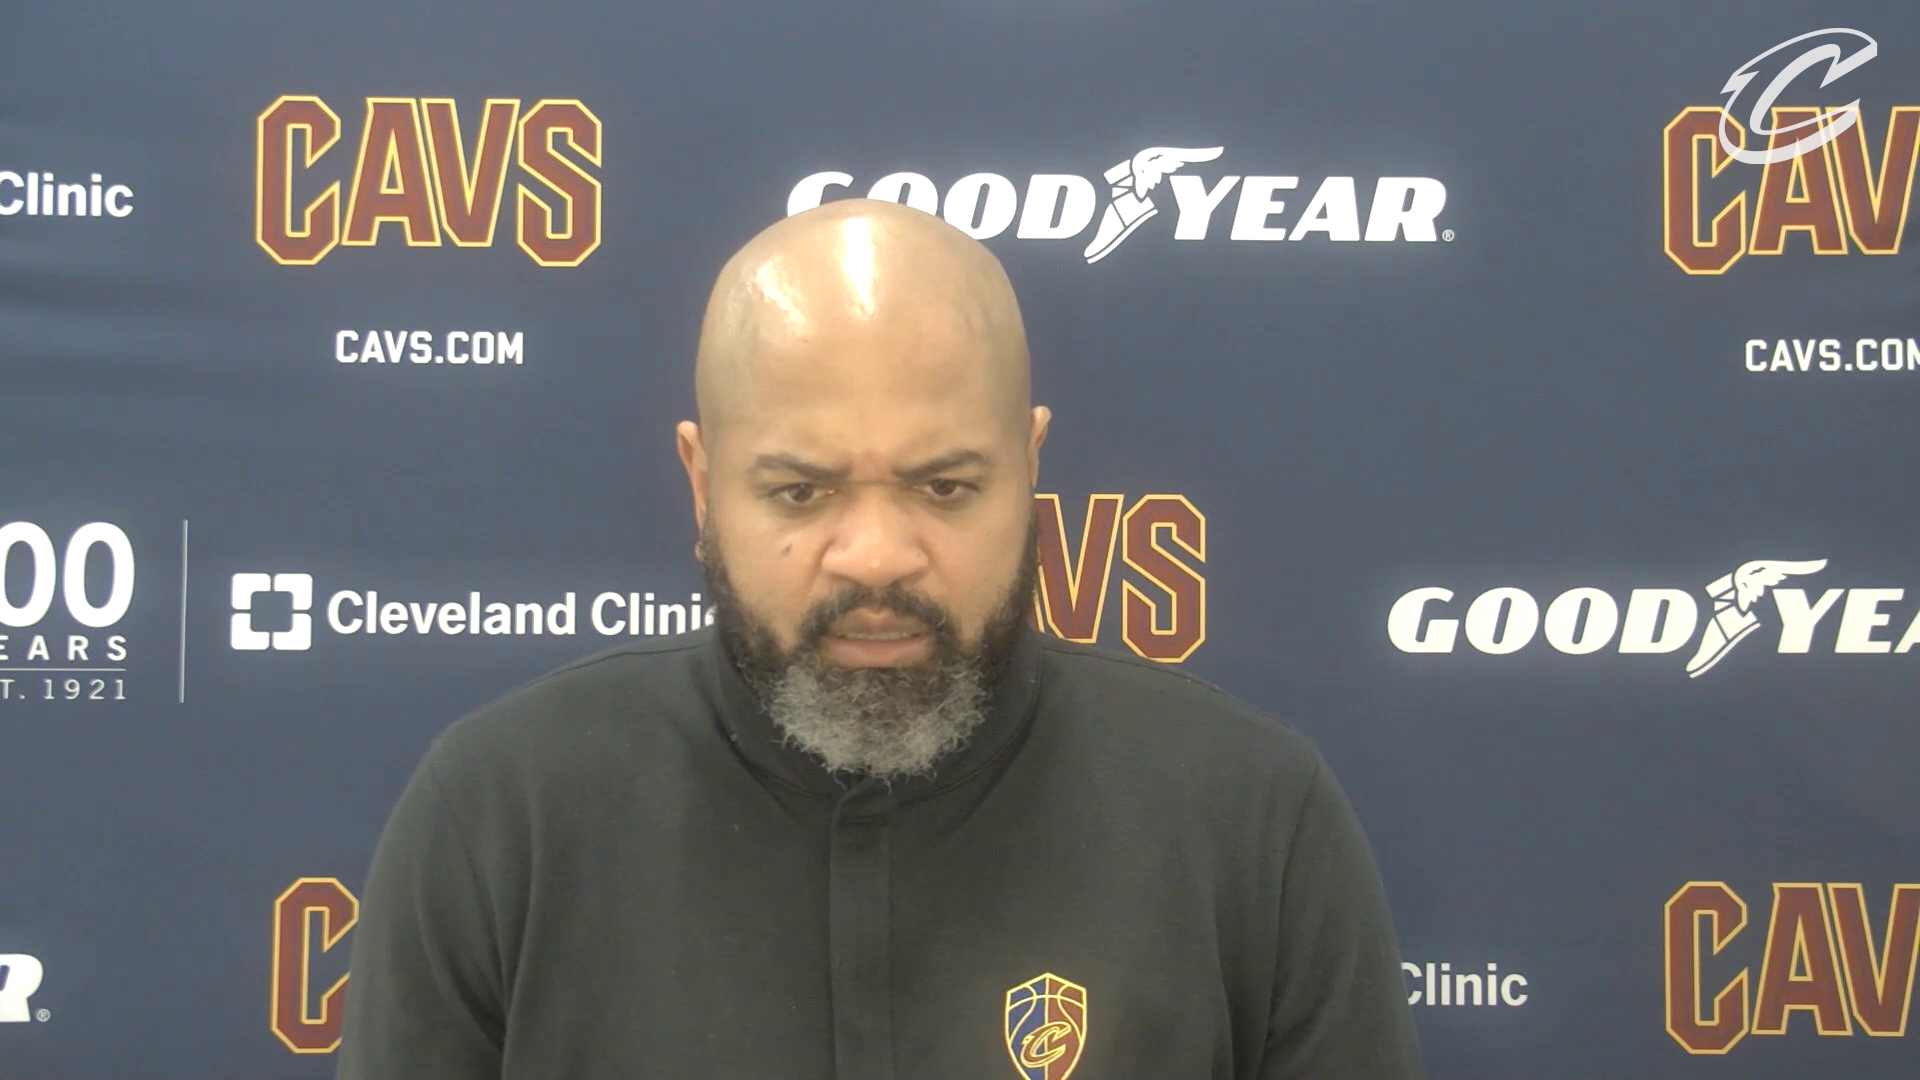 Cavs vs Raptors Postgame: Coach Bickerstaff